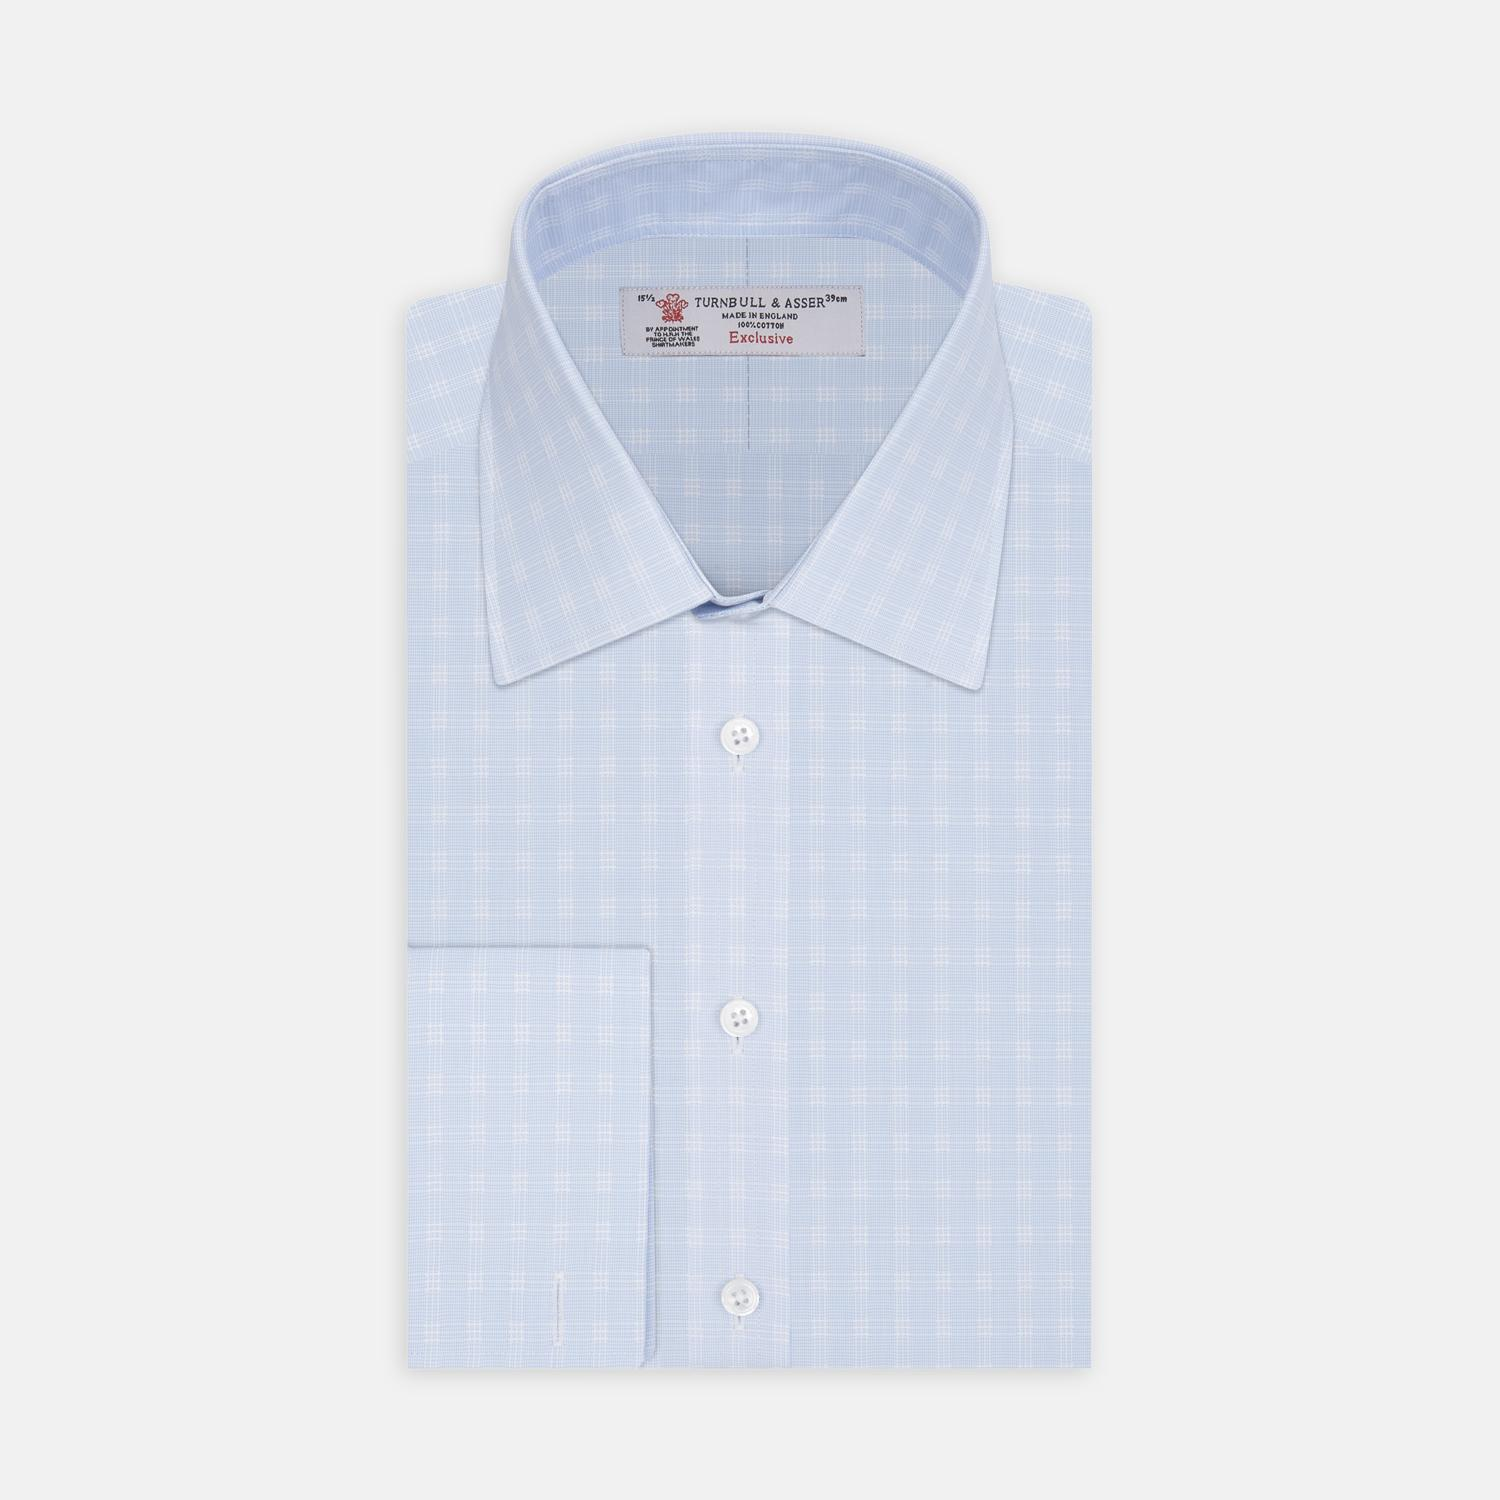 Low Price Fee Shipping Pale Blue and White Check Cotton Shirt Turnbull & Asser Official Site The Best Store To Get Outlet Best Store To Get FwoUfOv